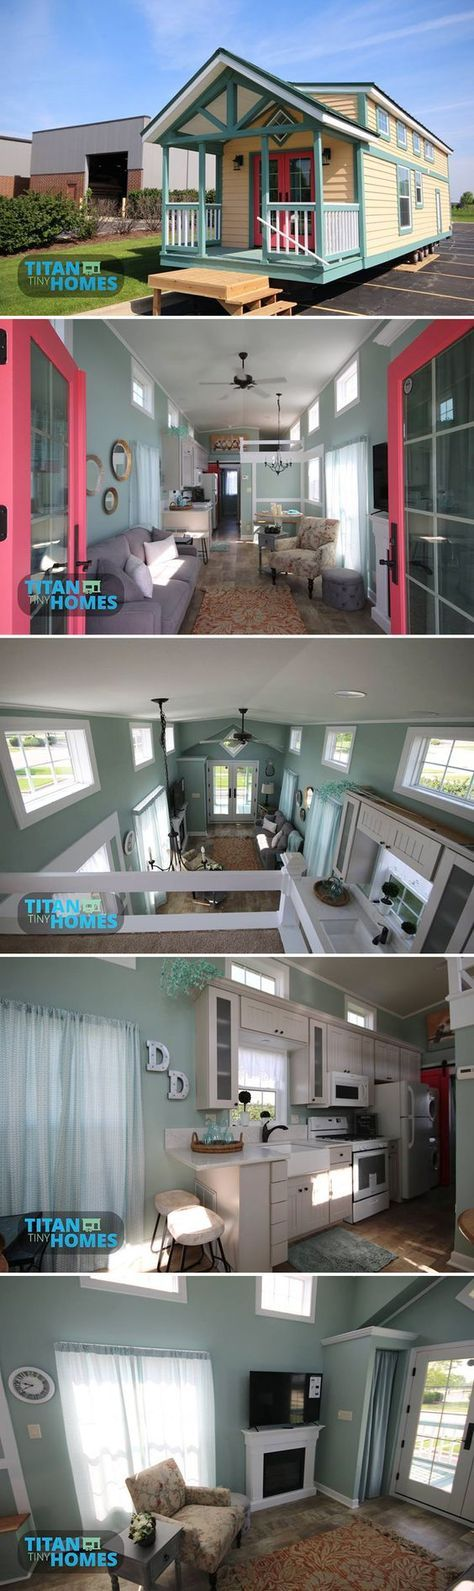 86 best home ideas images on pinterest home kitchen and for Tiny house with main floor bedroom